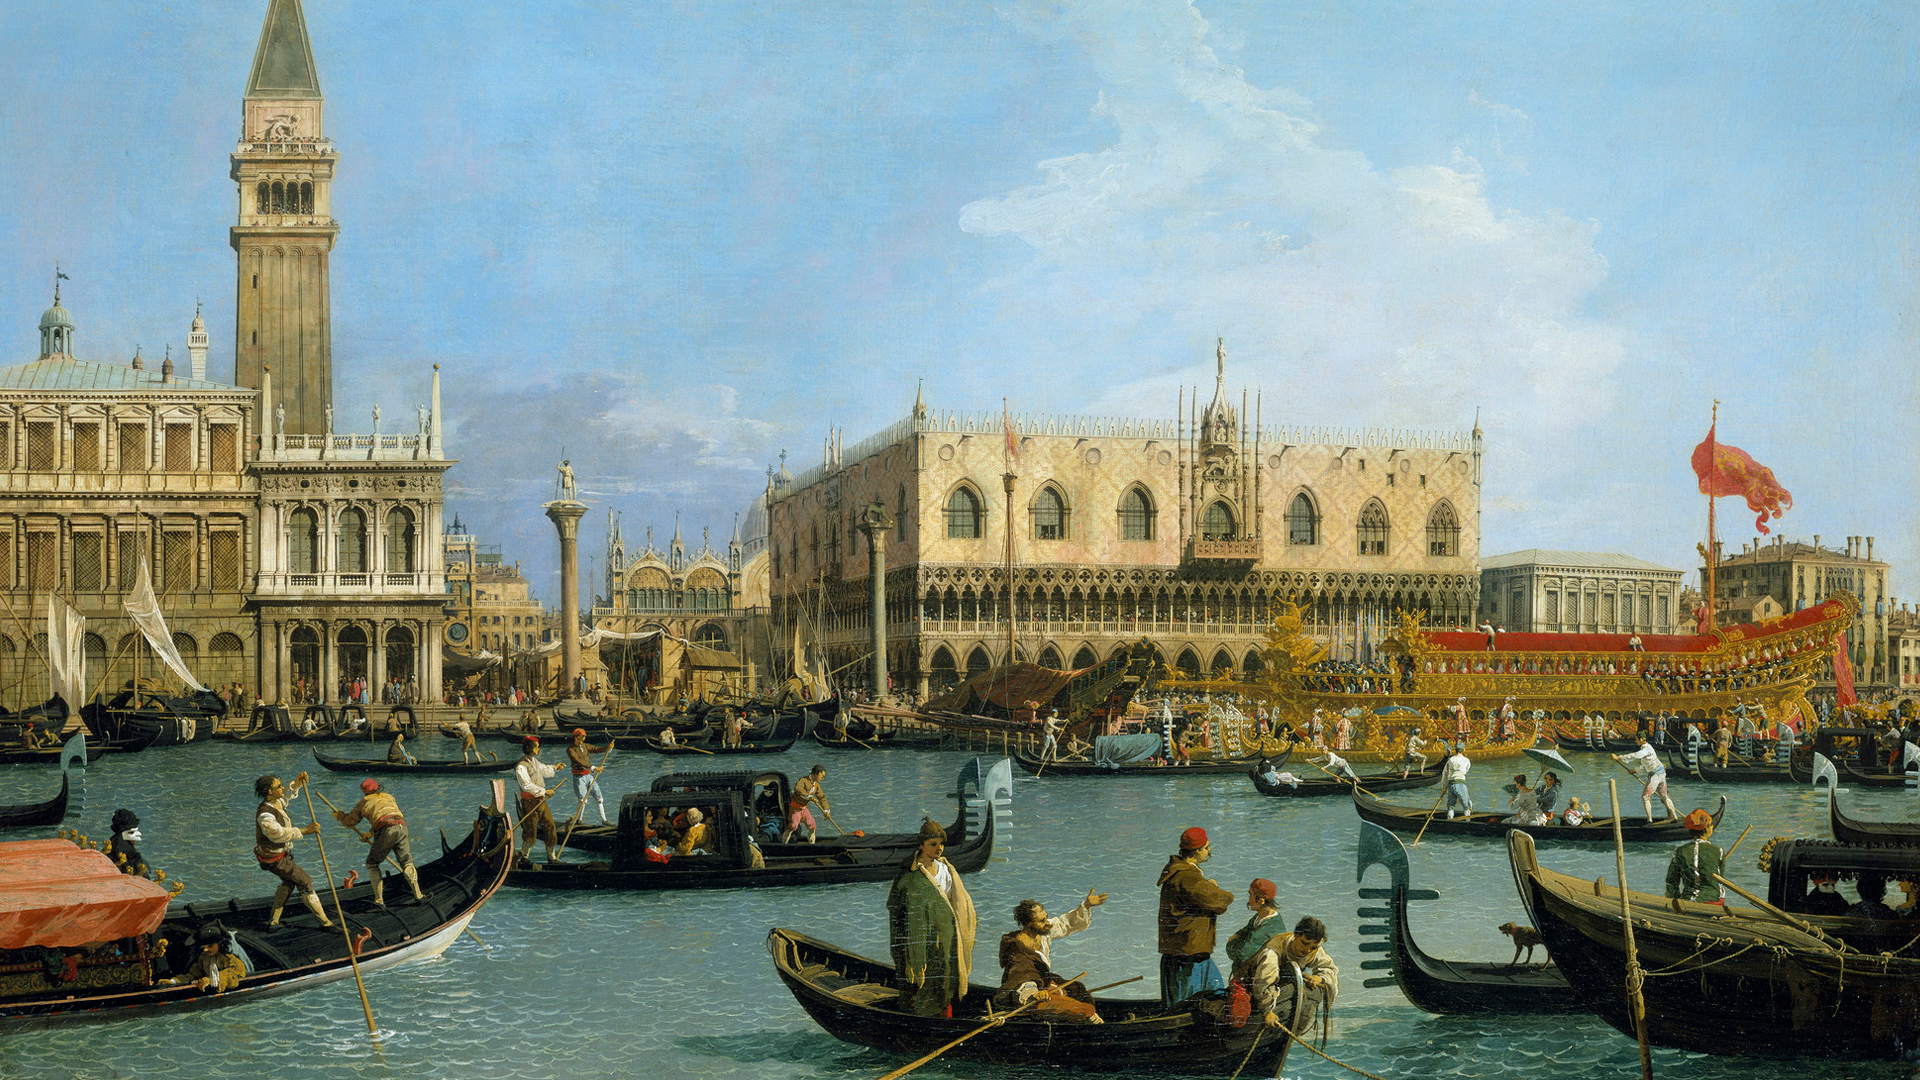 The Lion of the Sea - The Art of Venice